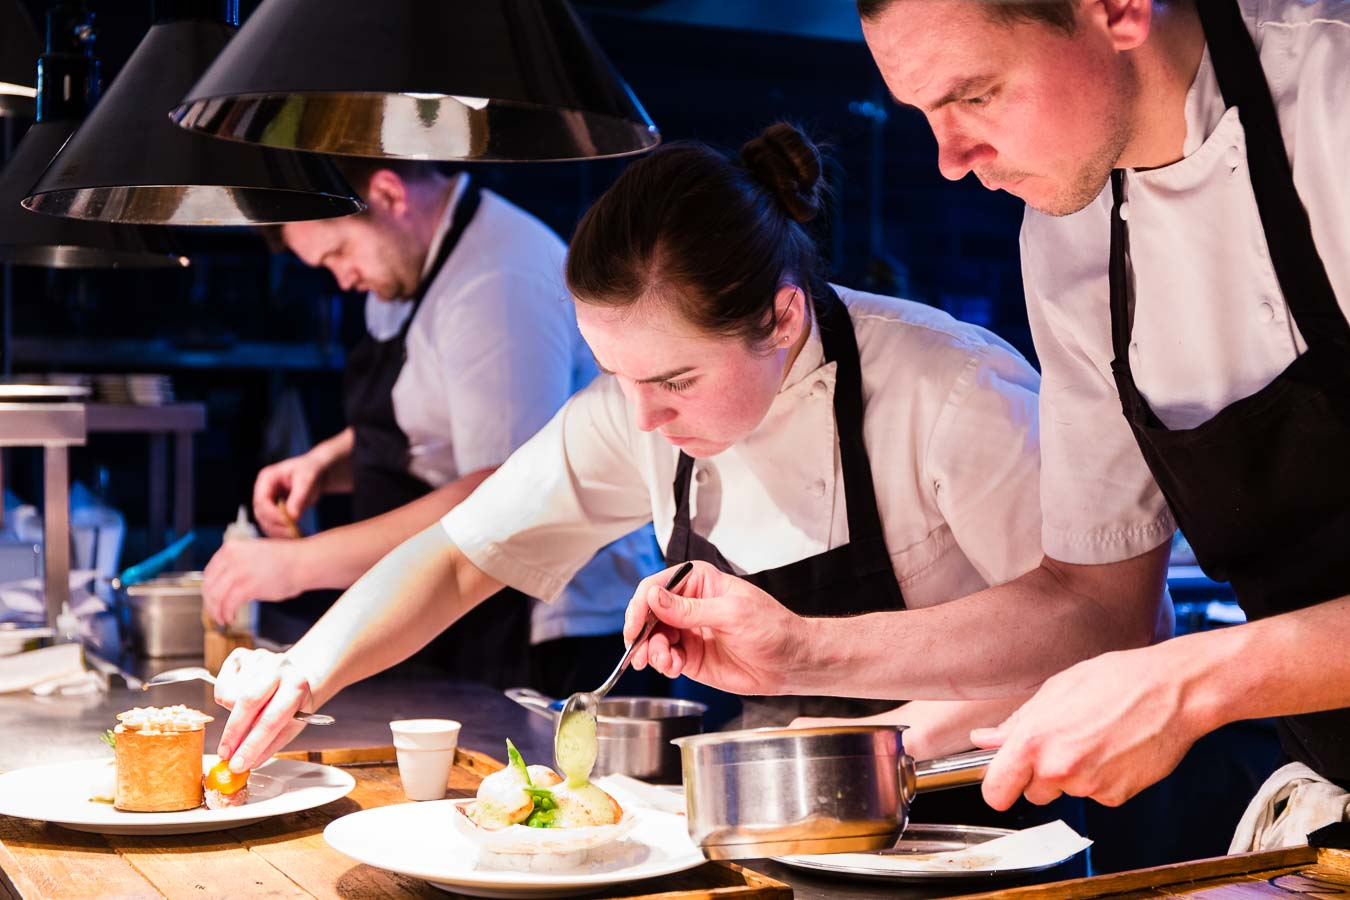 Three chefs looking very focused, plating up food on the pass of The Oxford Blue Pub, with Ami Blakey and Steven Ellis